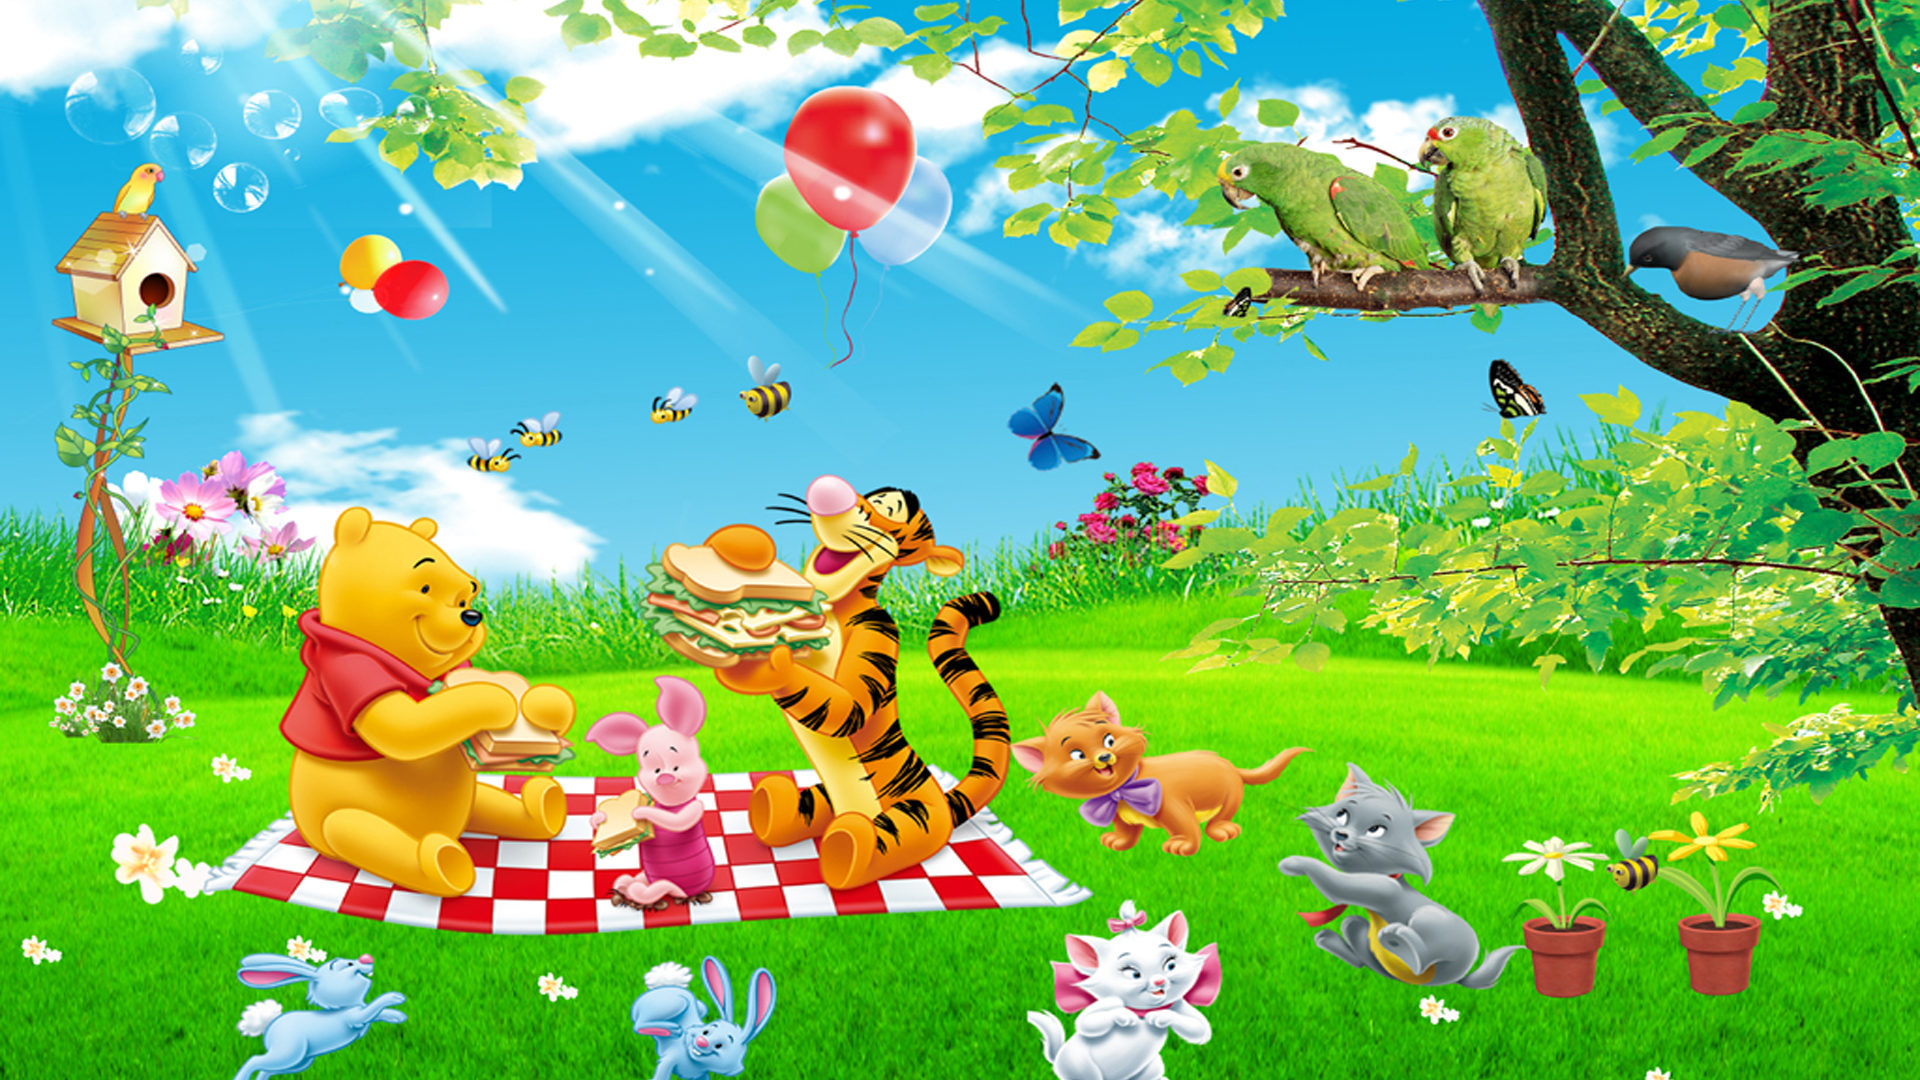 Cute Pooh Bear Wallpapers Cartoon Tigger Piglet And Winnie The Pooh Picnic Summer